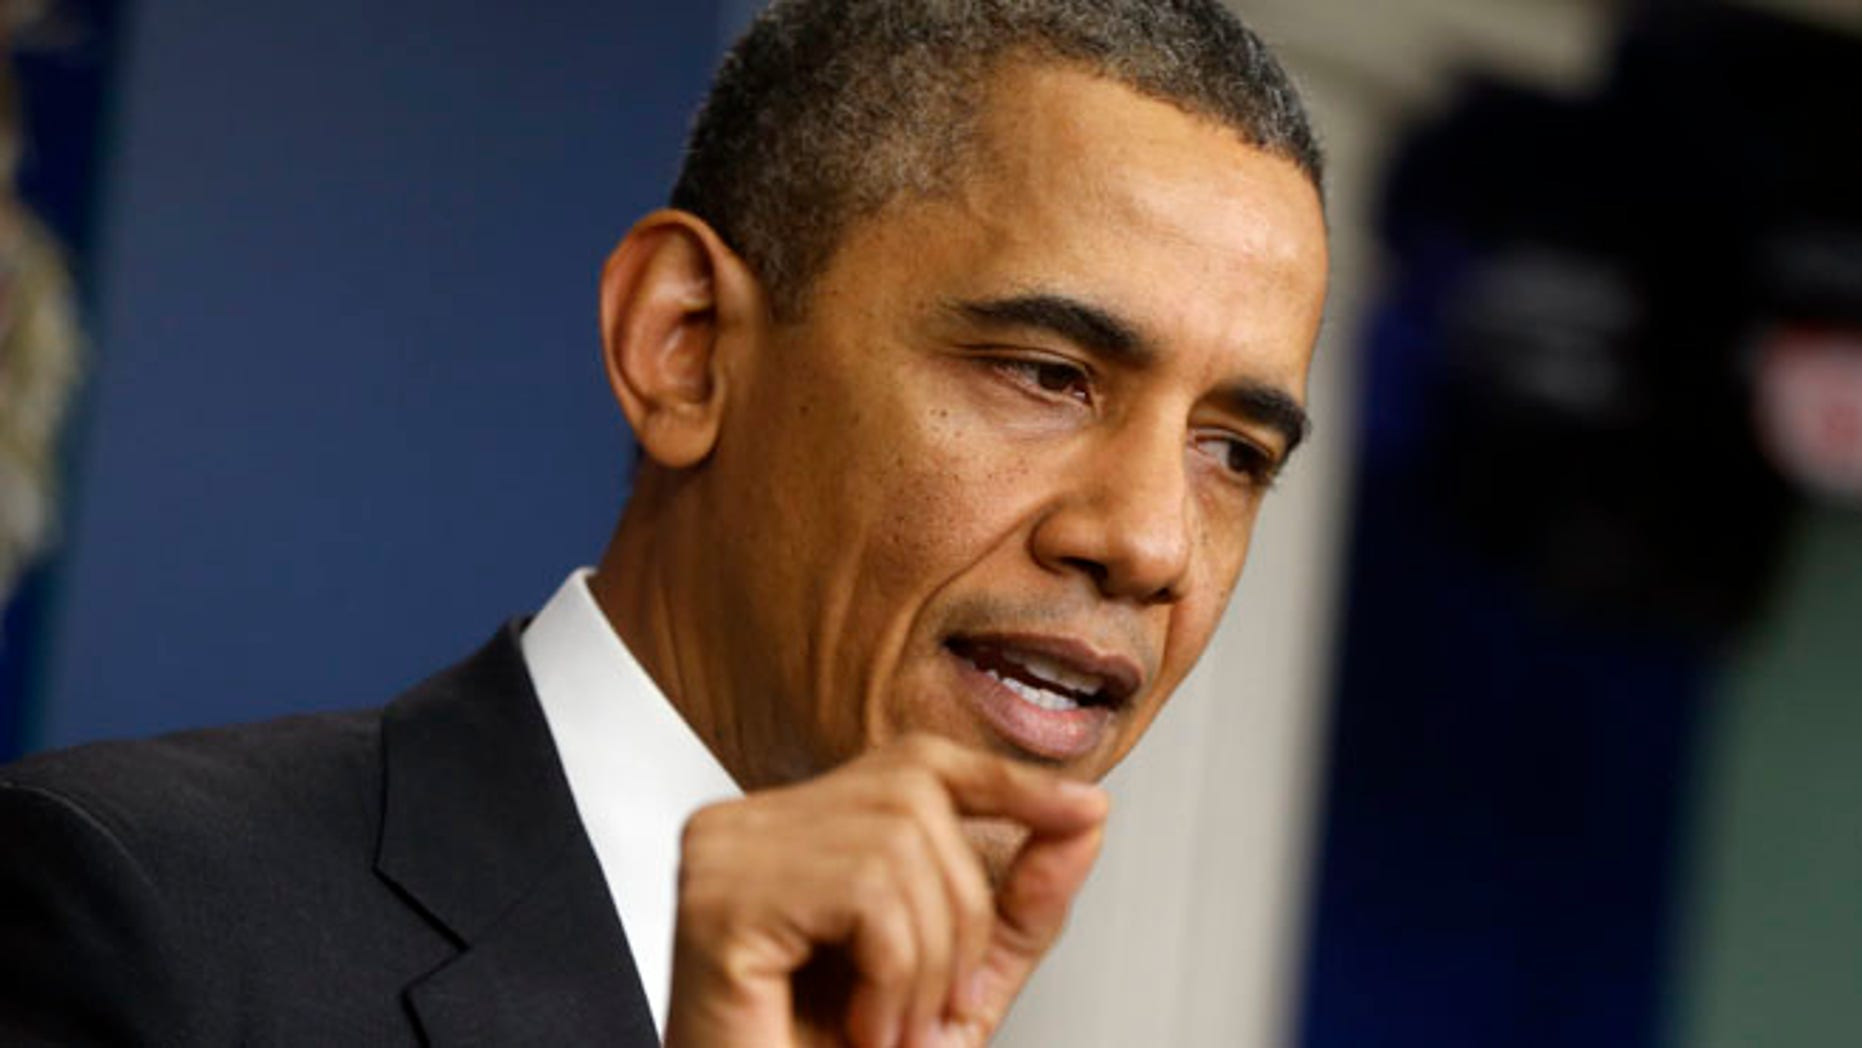 President Obama speaks during his end-of-the-year news conference at the White House in Washington, Friday, Dec. 20, 2013.